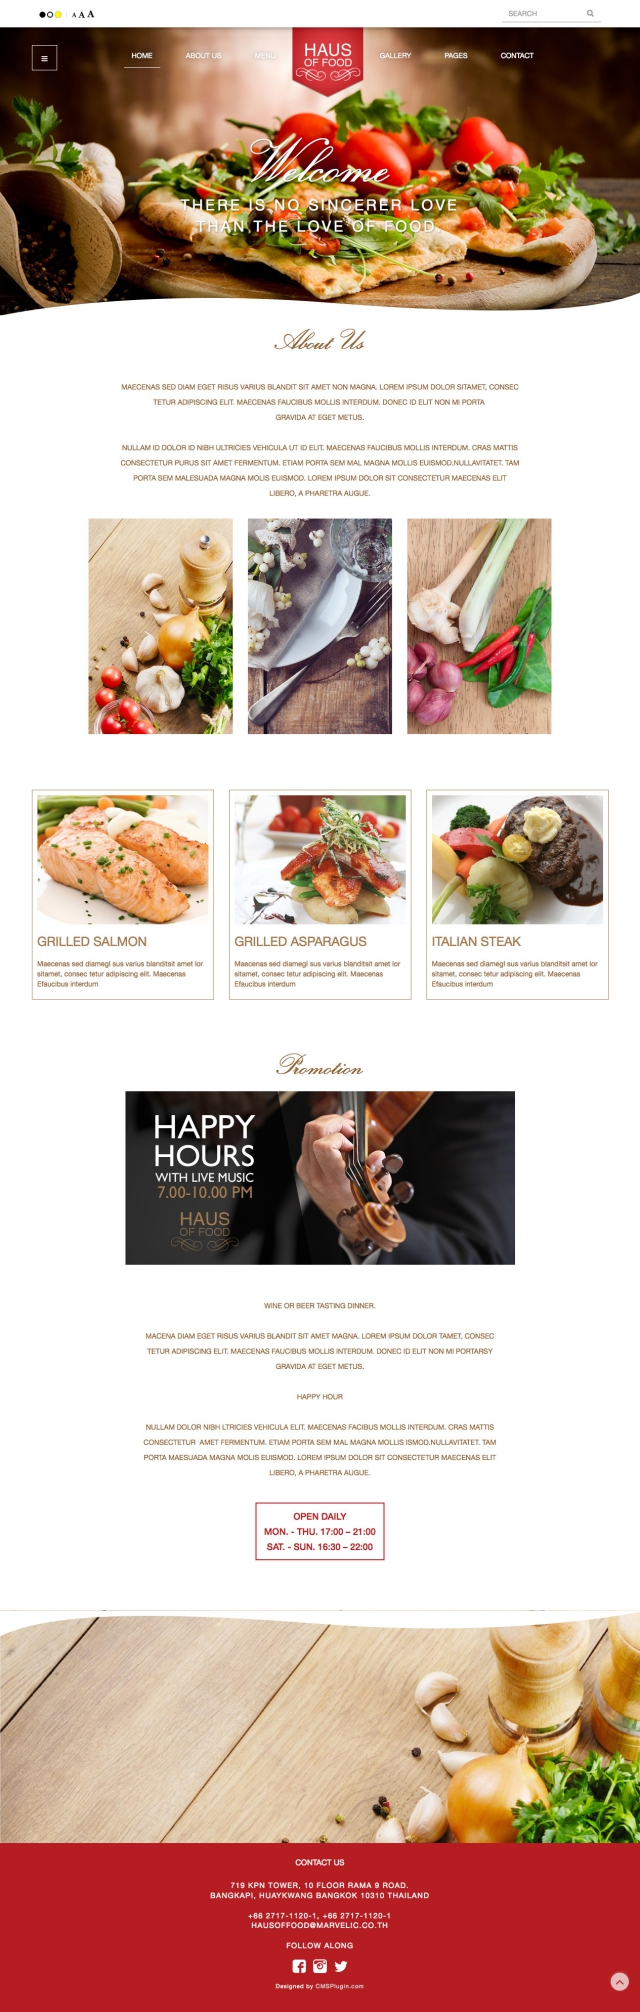 Haus of food Home Page